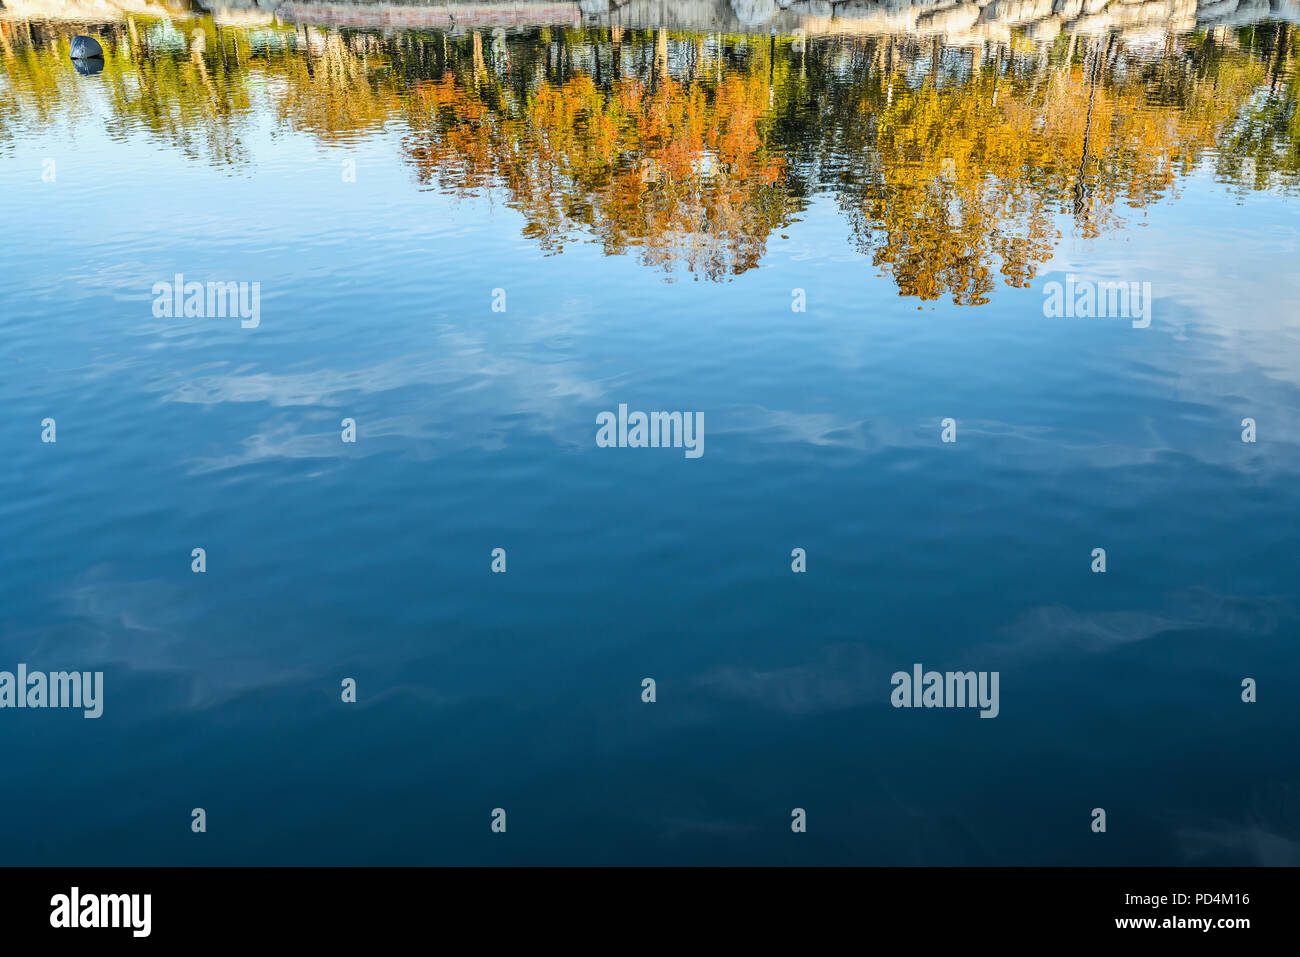 Upside down autumn trees with blue sky reflection in water. Stock Photo